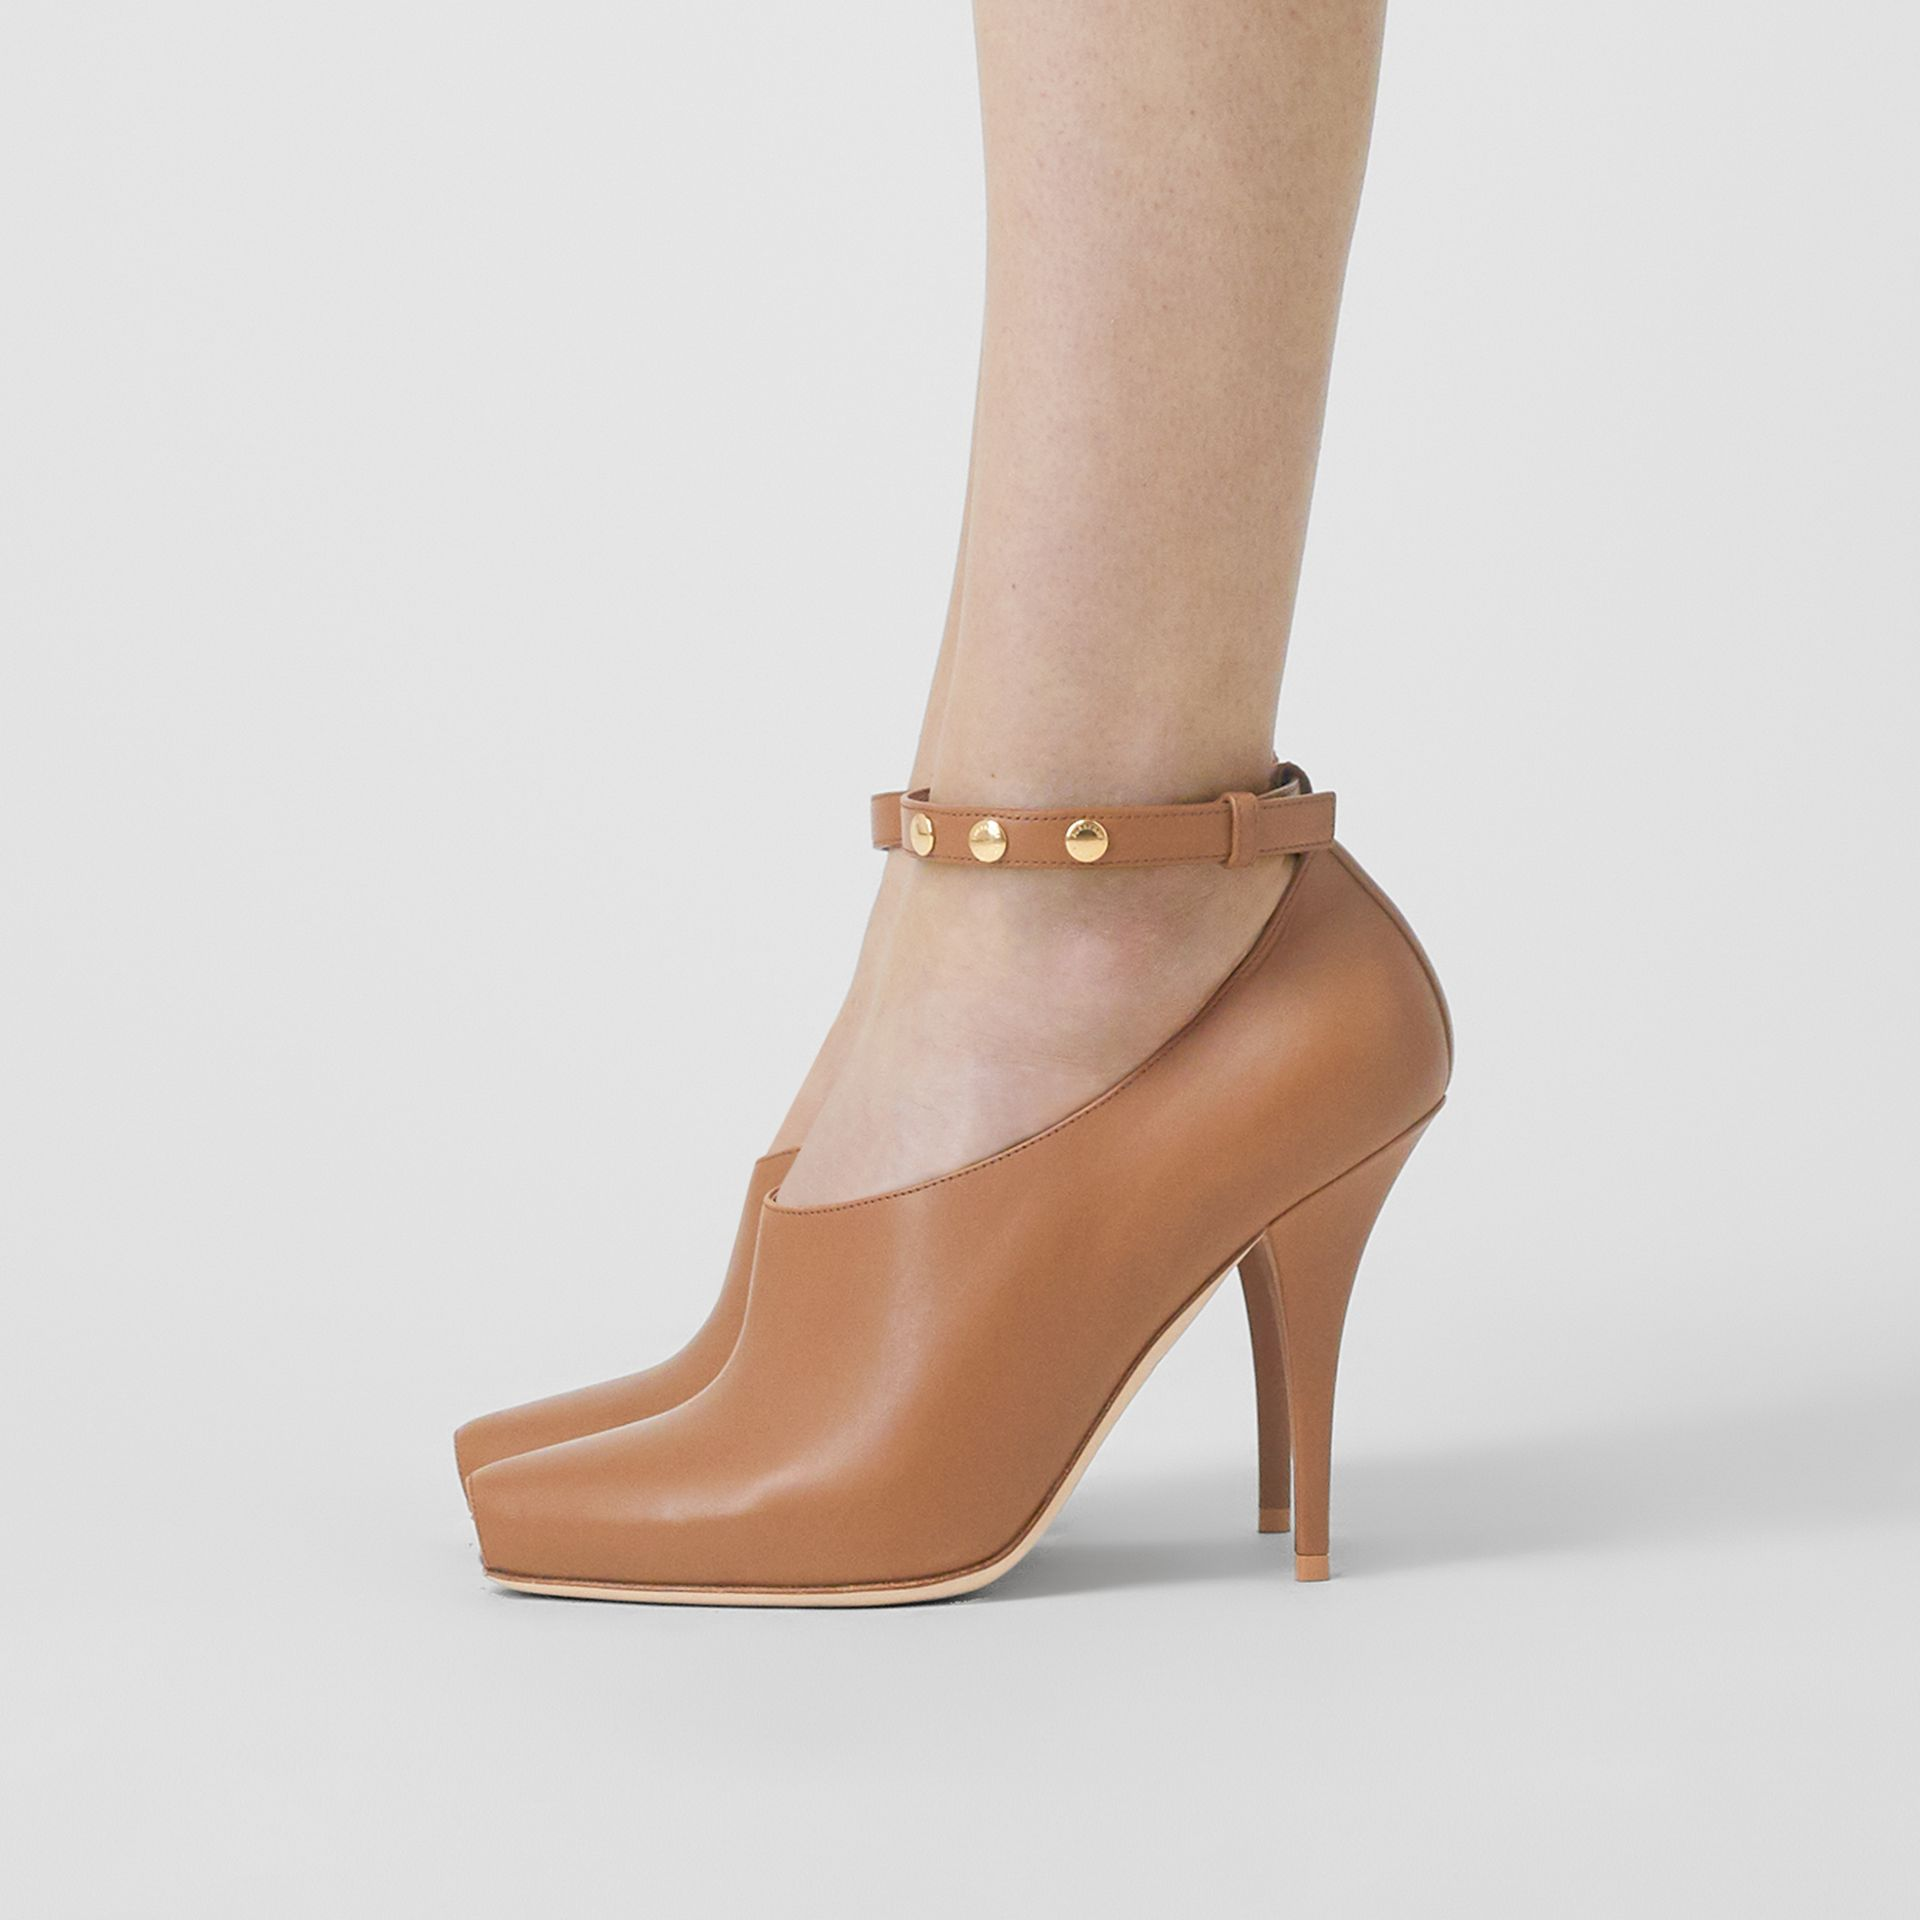 Leather Peep-toe Pumps in Amber Brown - Women | Burberry Hong Kong - gallery image 2